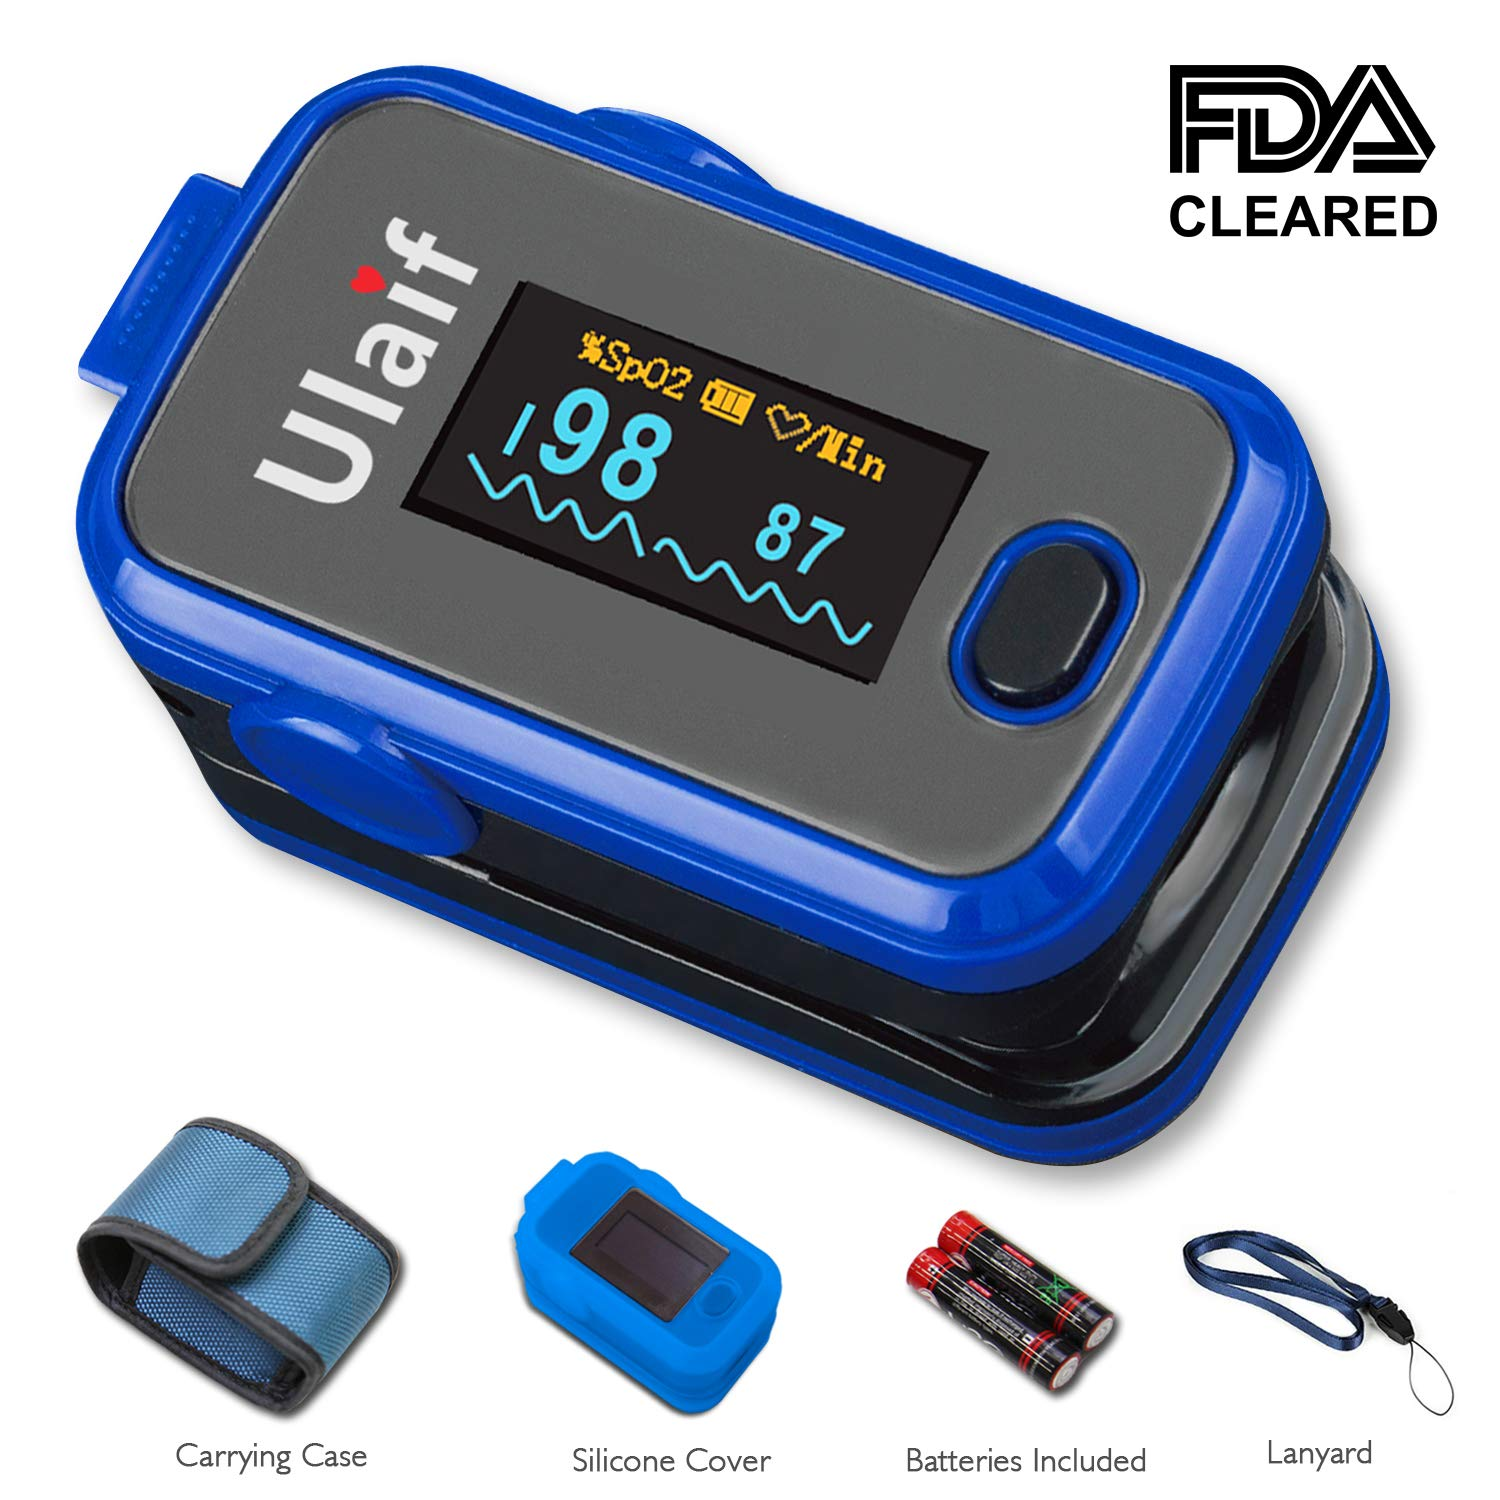 FDA Cleared Ulaif Fingertip Pulse Oximeter for Sports or Aviation use only with OLED Display Portable Oximetry Blood Oxygen Saturation Monitor SpO2 Finger Pulse Oximeter Readings